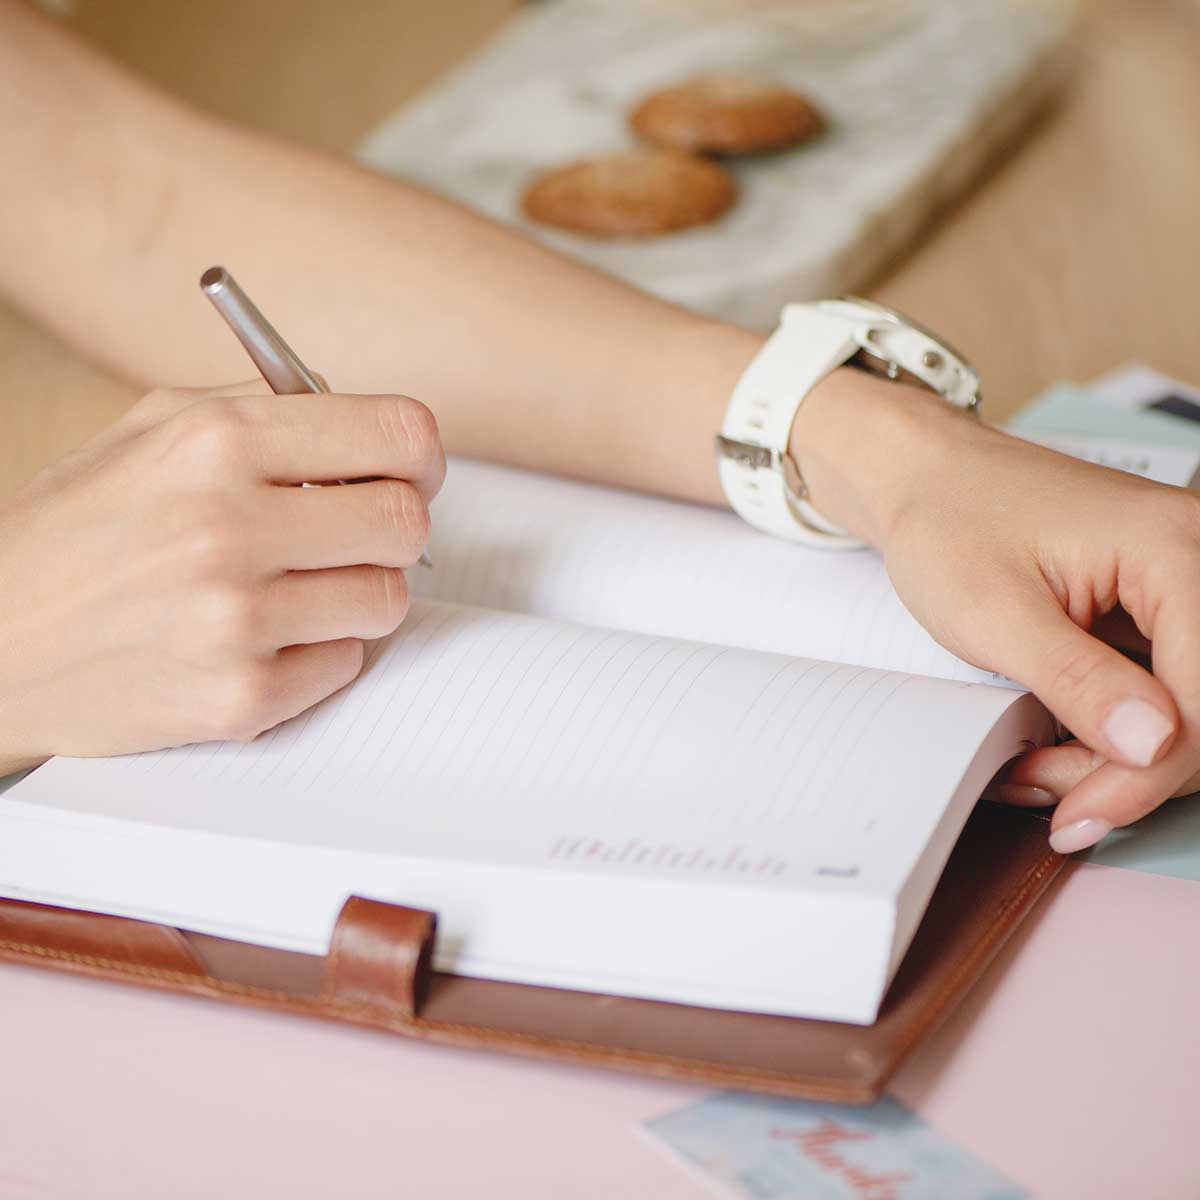 woman wearing white watch and writing in journal on desk